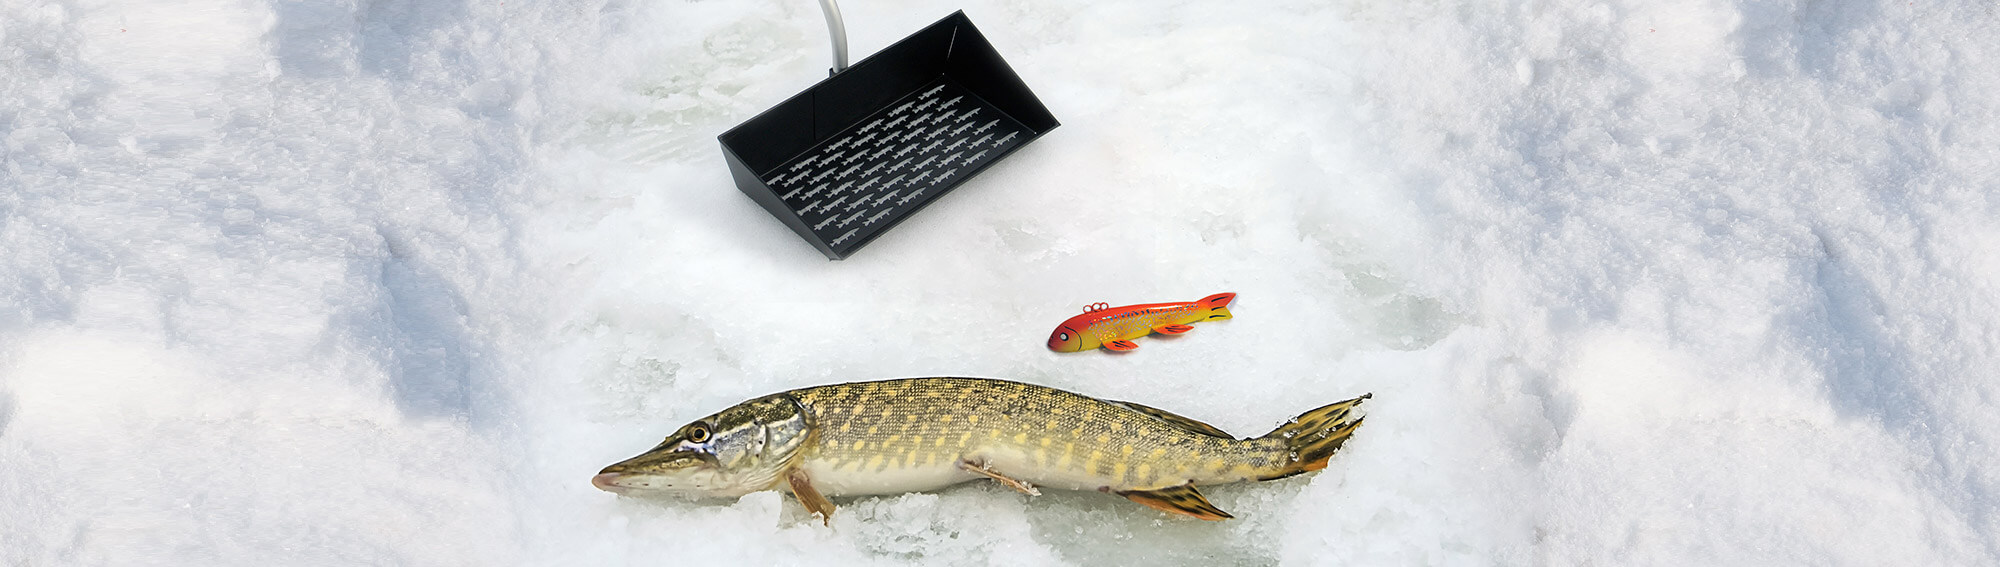 Northern Pike laying on the ice next to a large decoy and a Doty's Darkhouse Dipper